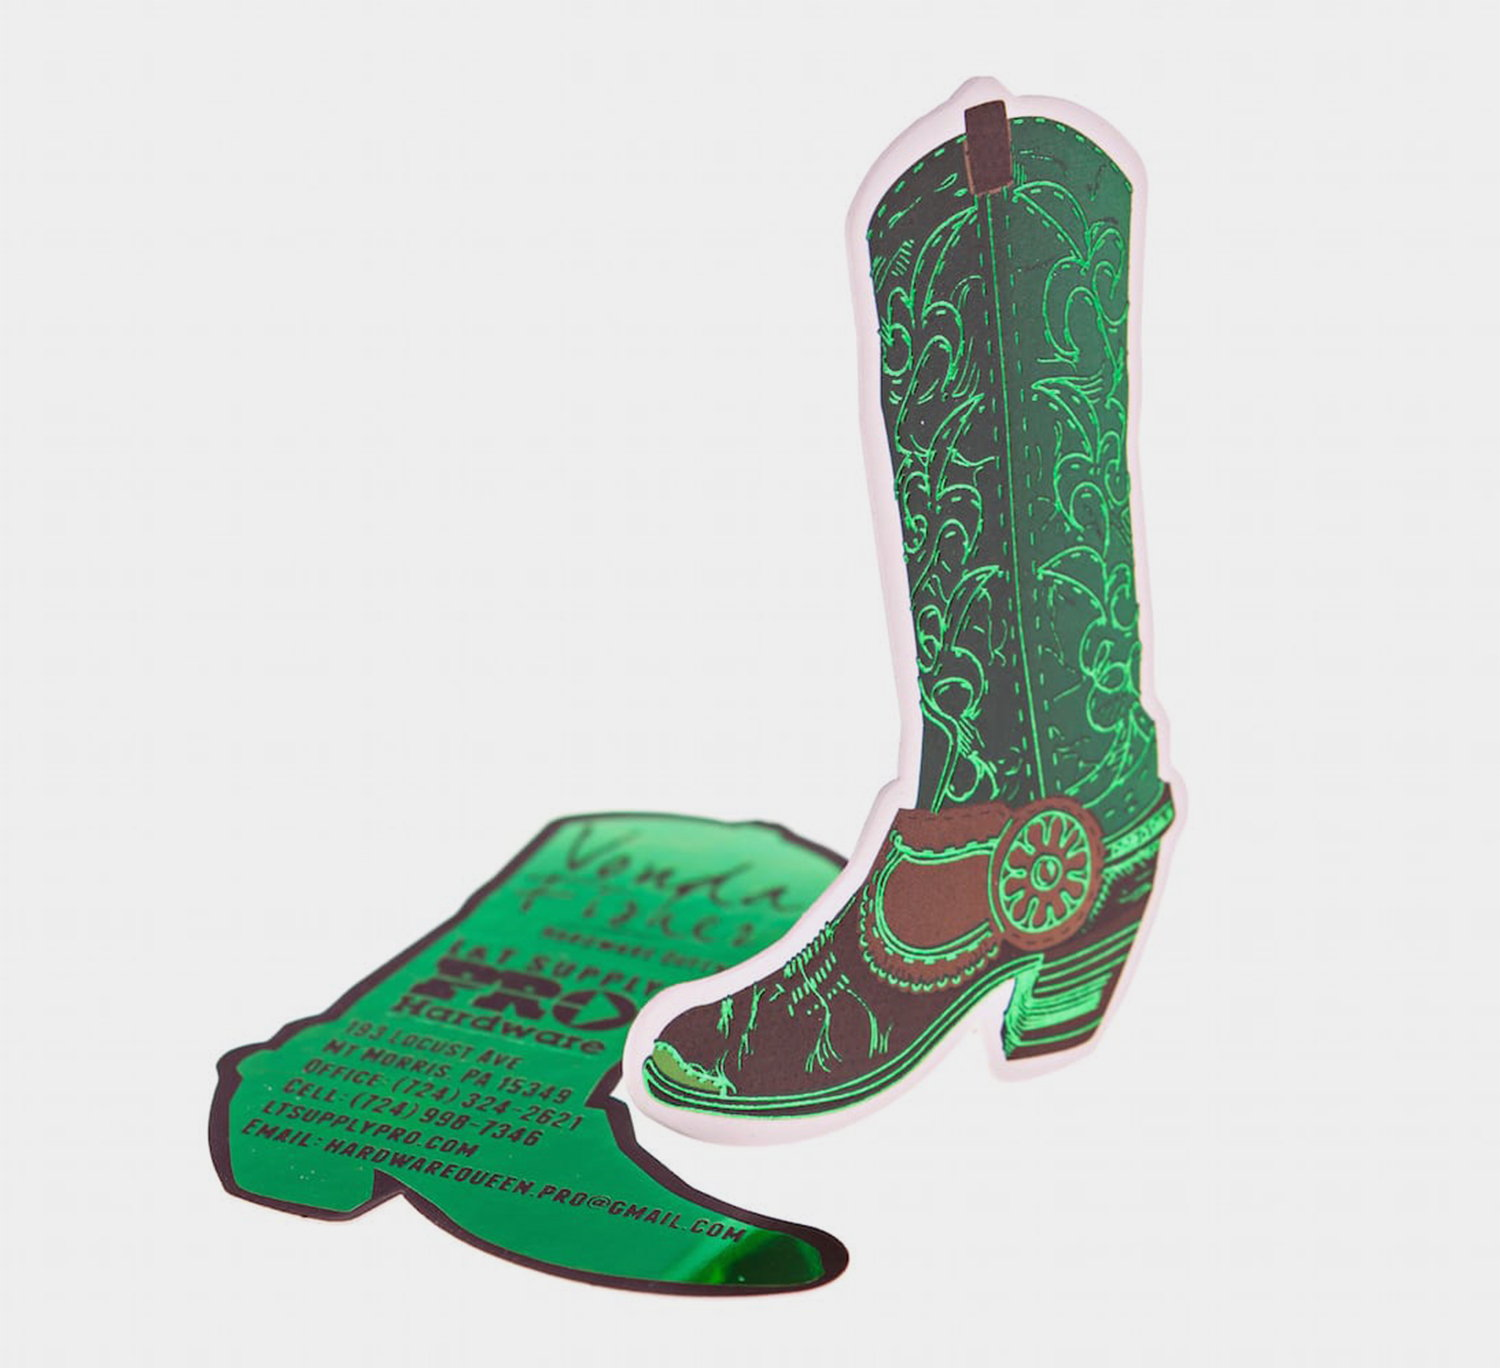 die cut business cards, cowboy boots